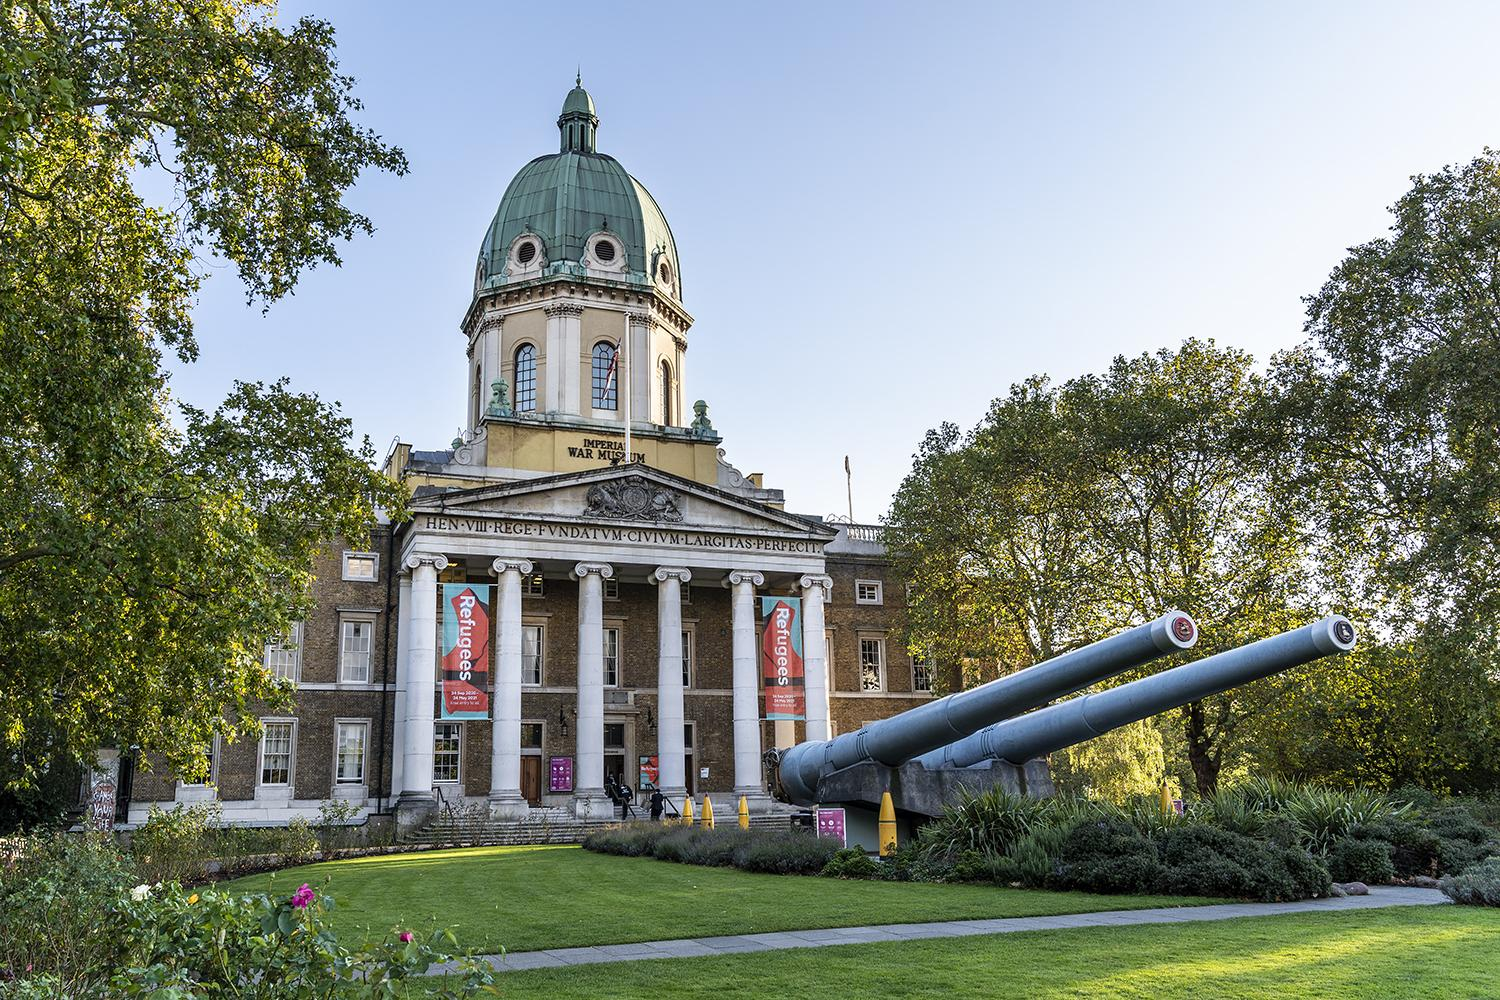 Exterior of IWM London